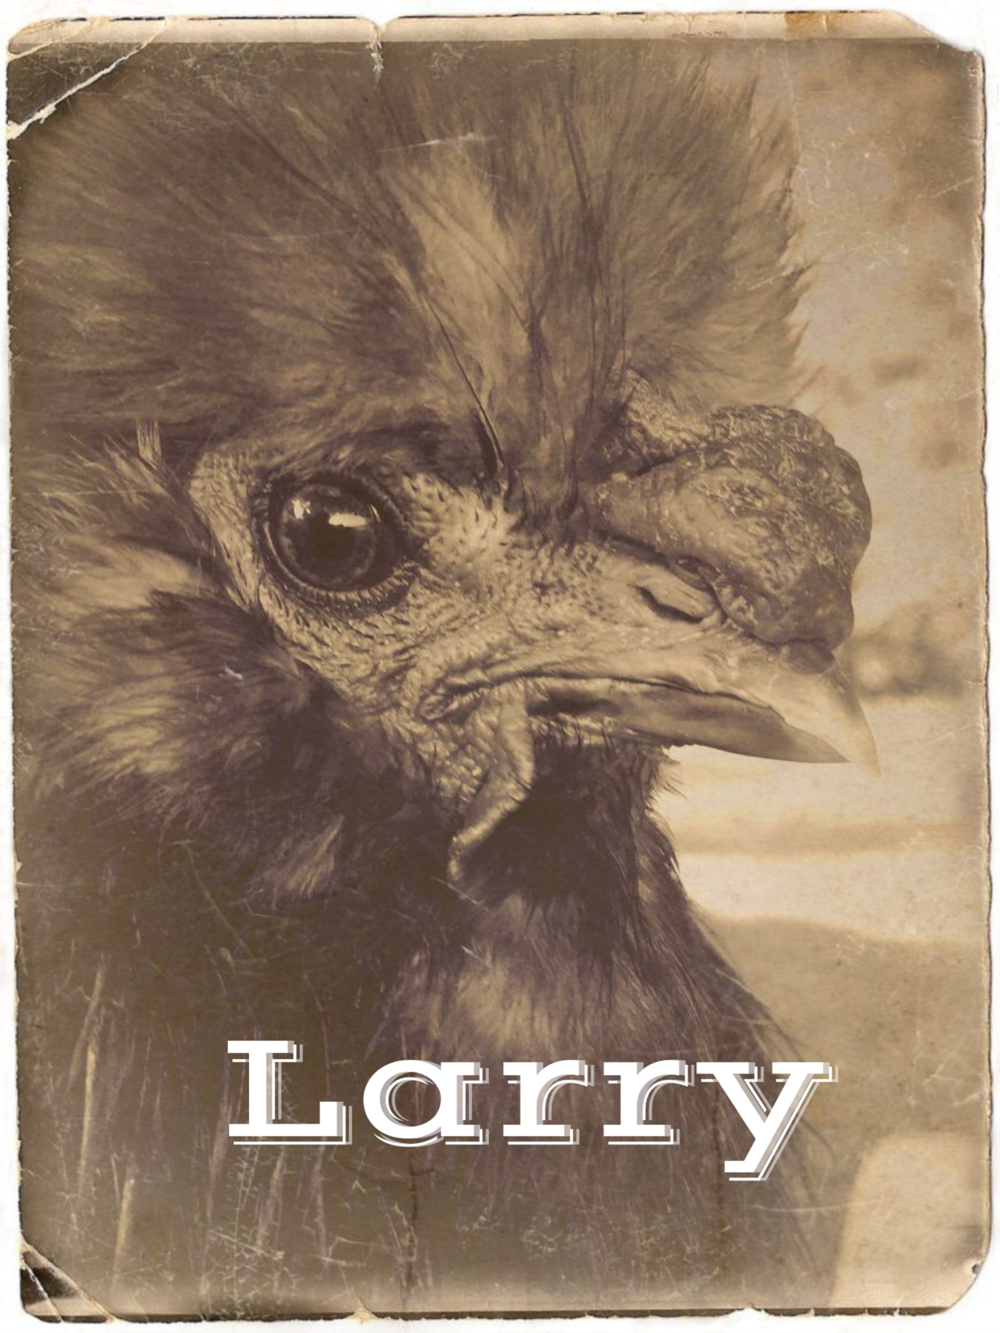 LARRY - an unwanted mail-order chick gifted to a secretary in NYC.